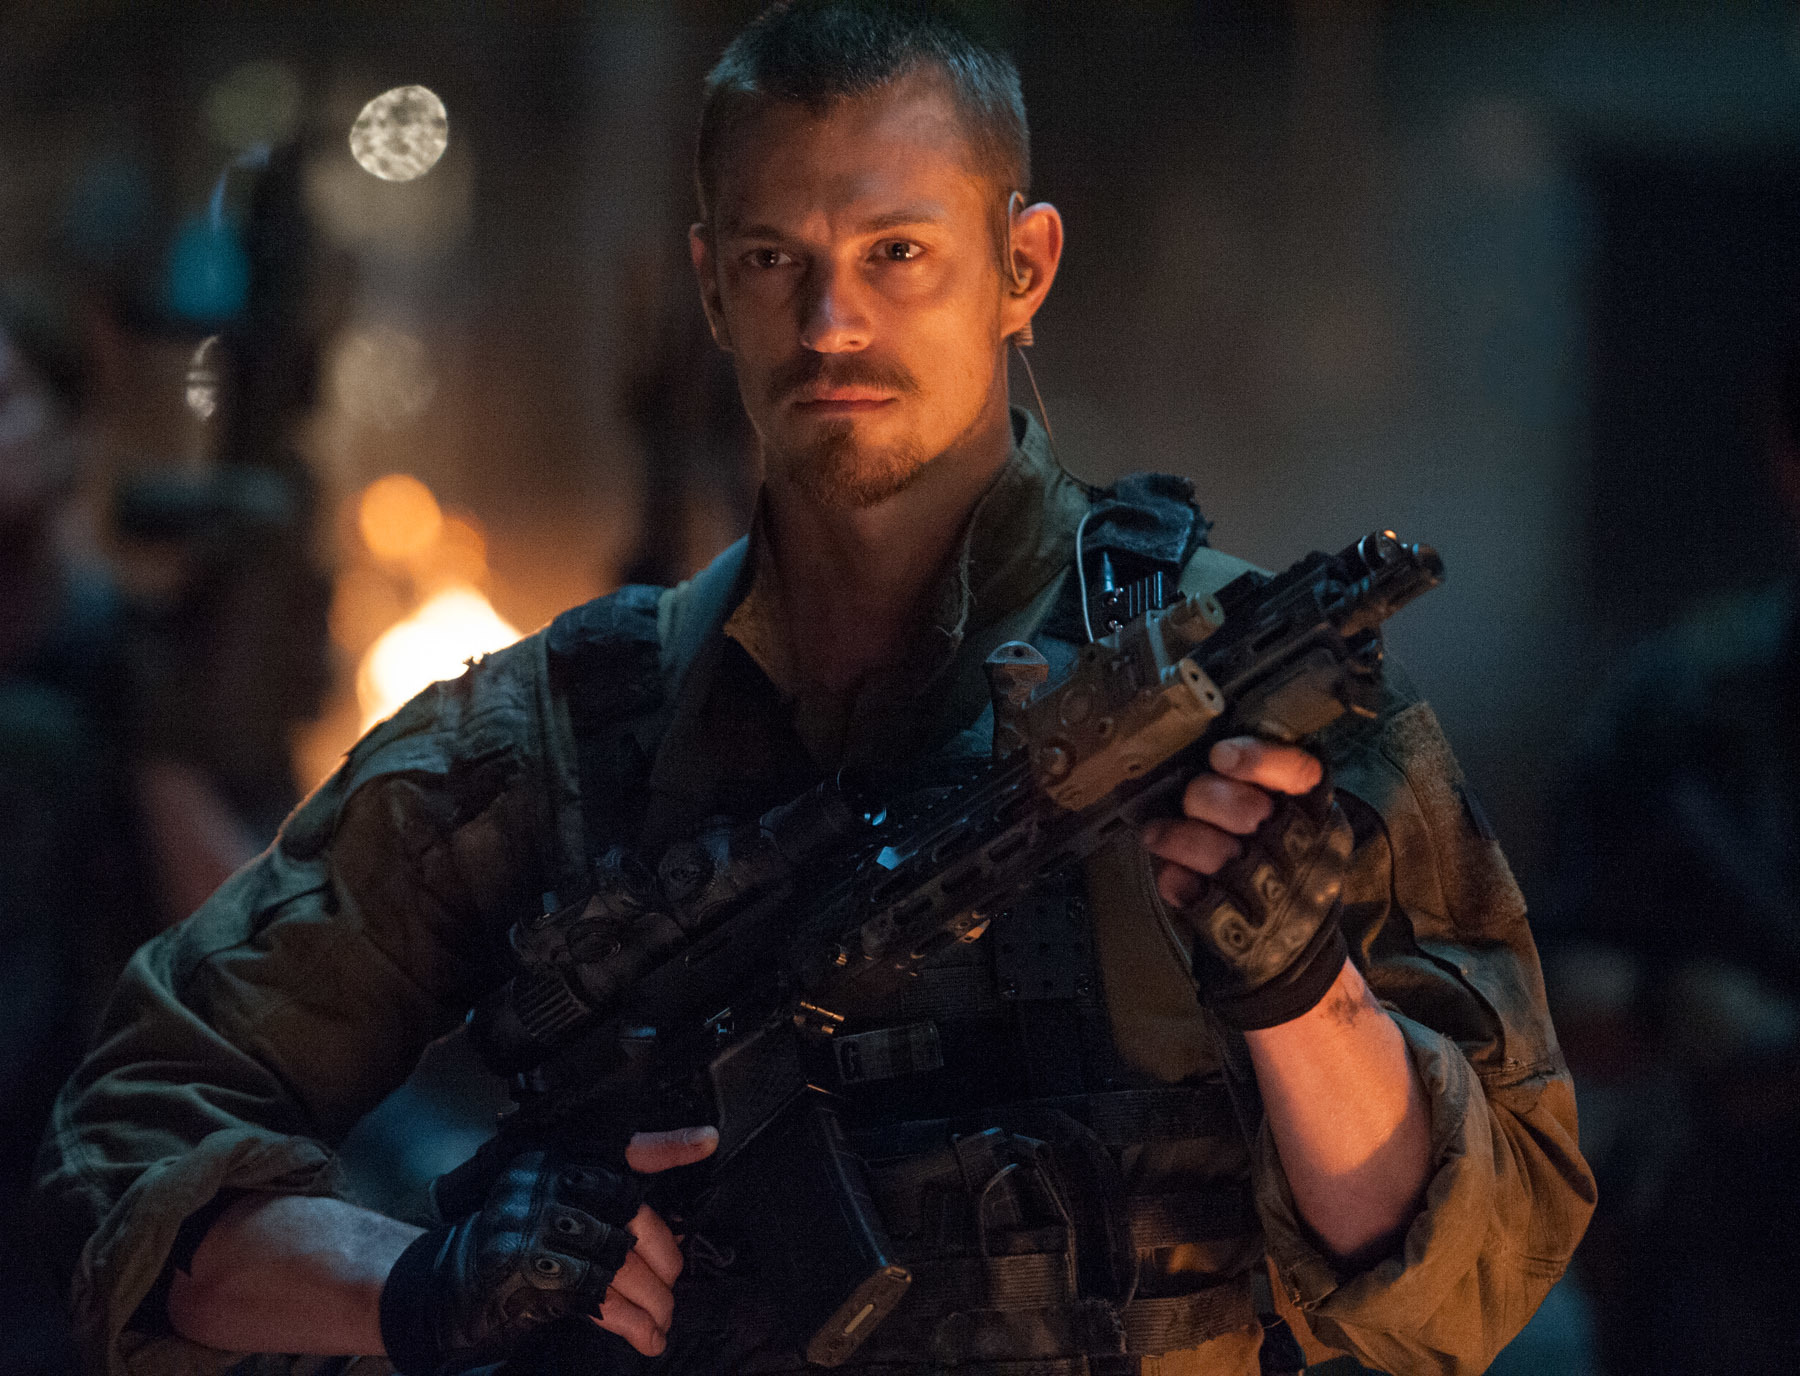 Joel Kinnaman on being burned by shell casings and nearly castrated on set: